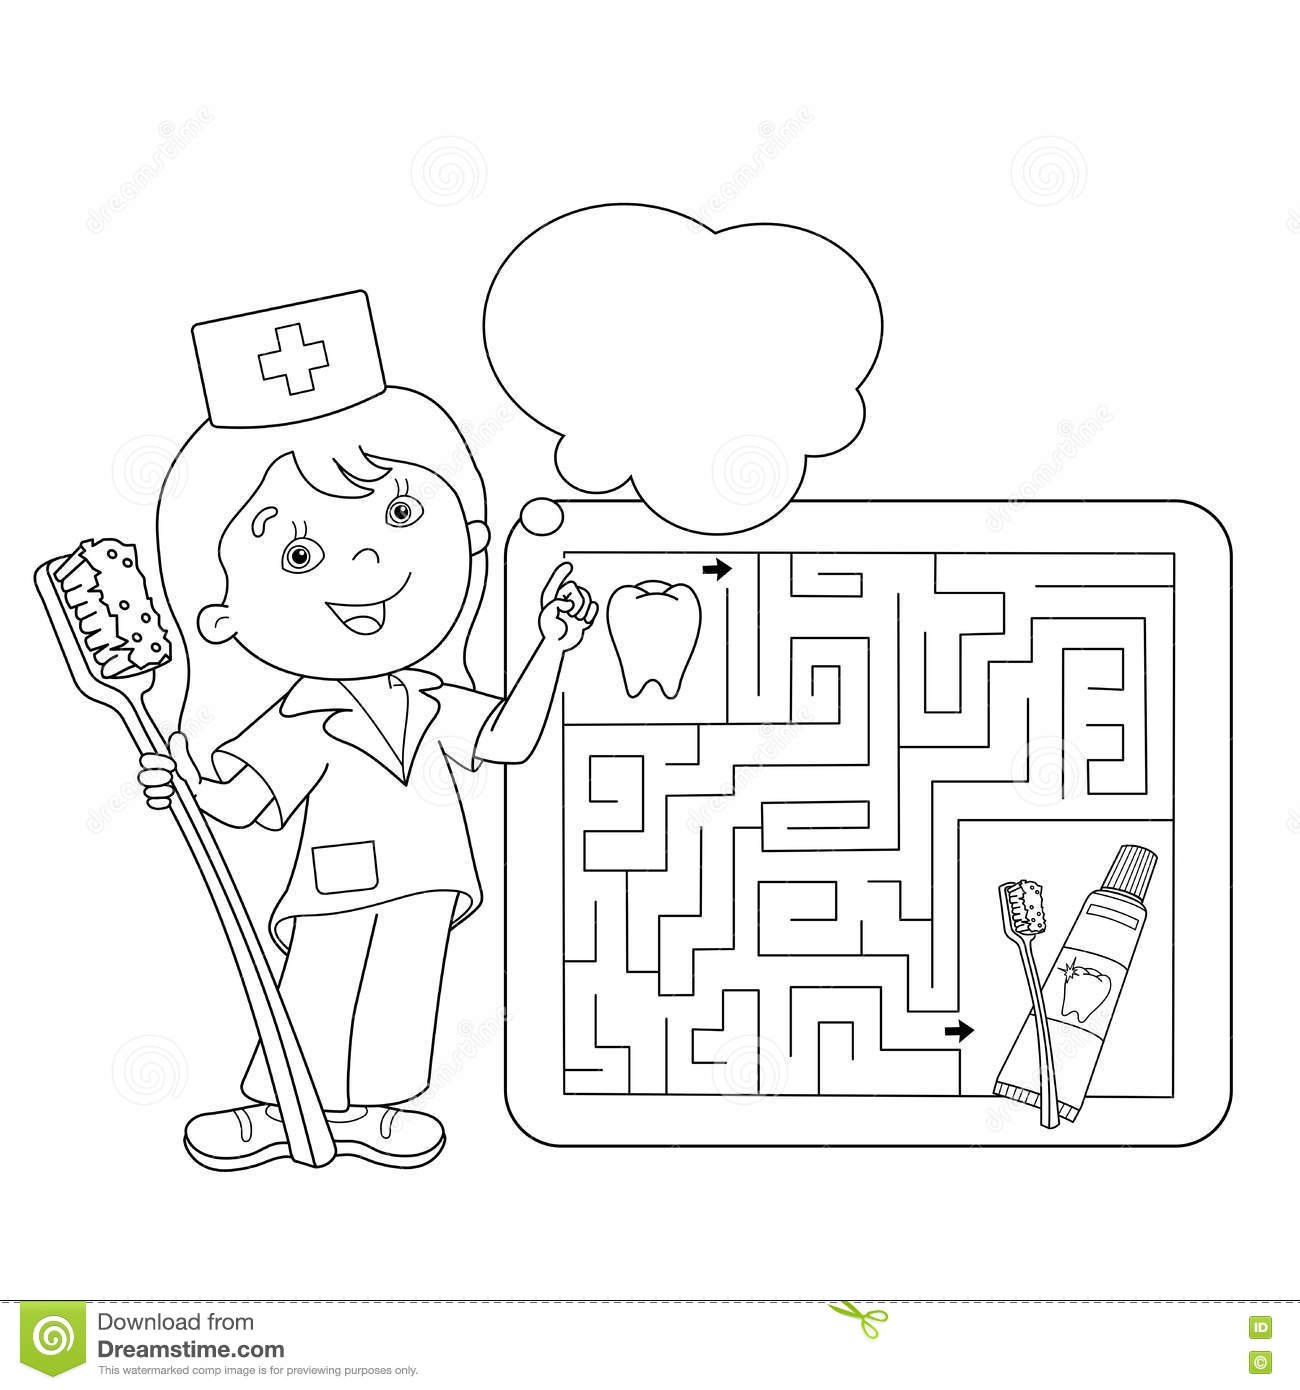 Coloring Page Outline Of Doctor With Toothbrush And